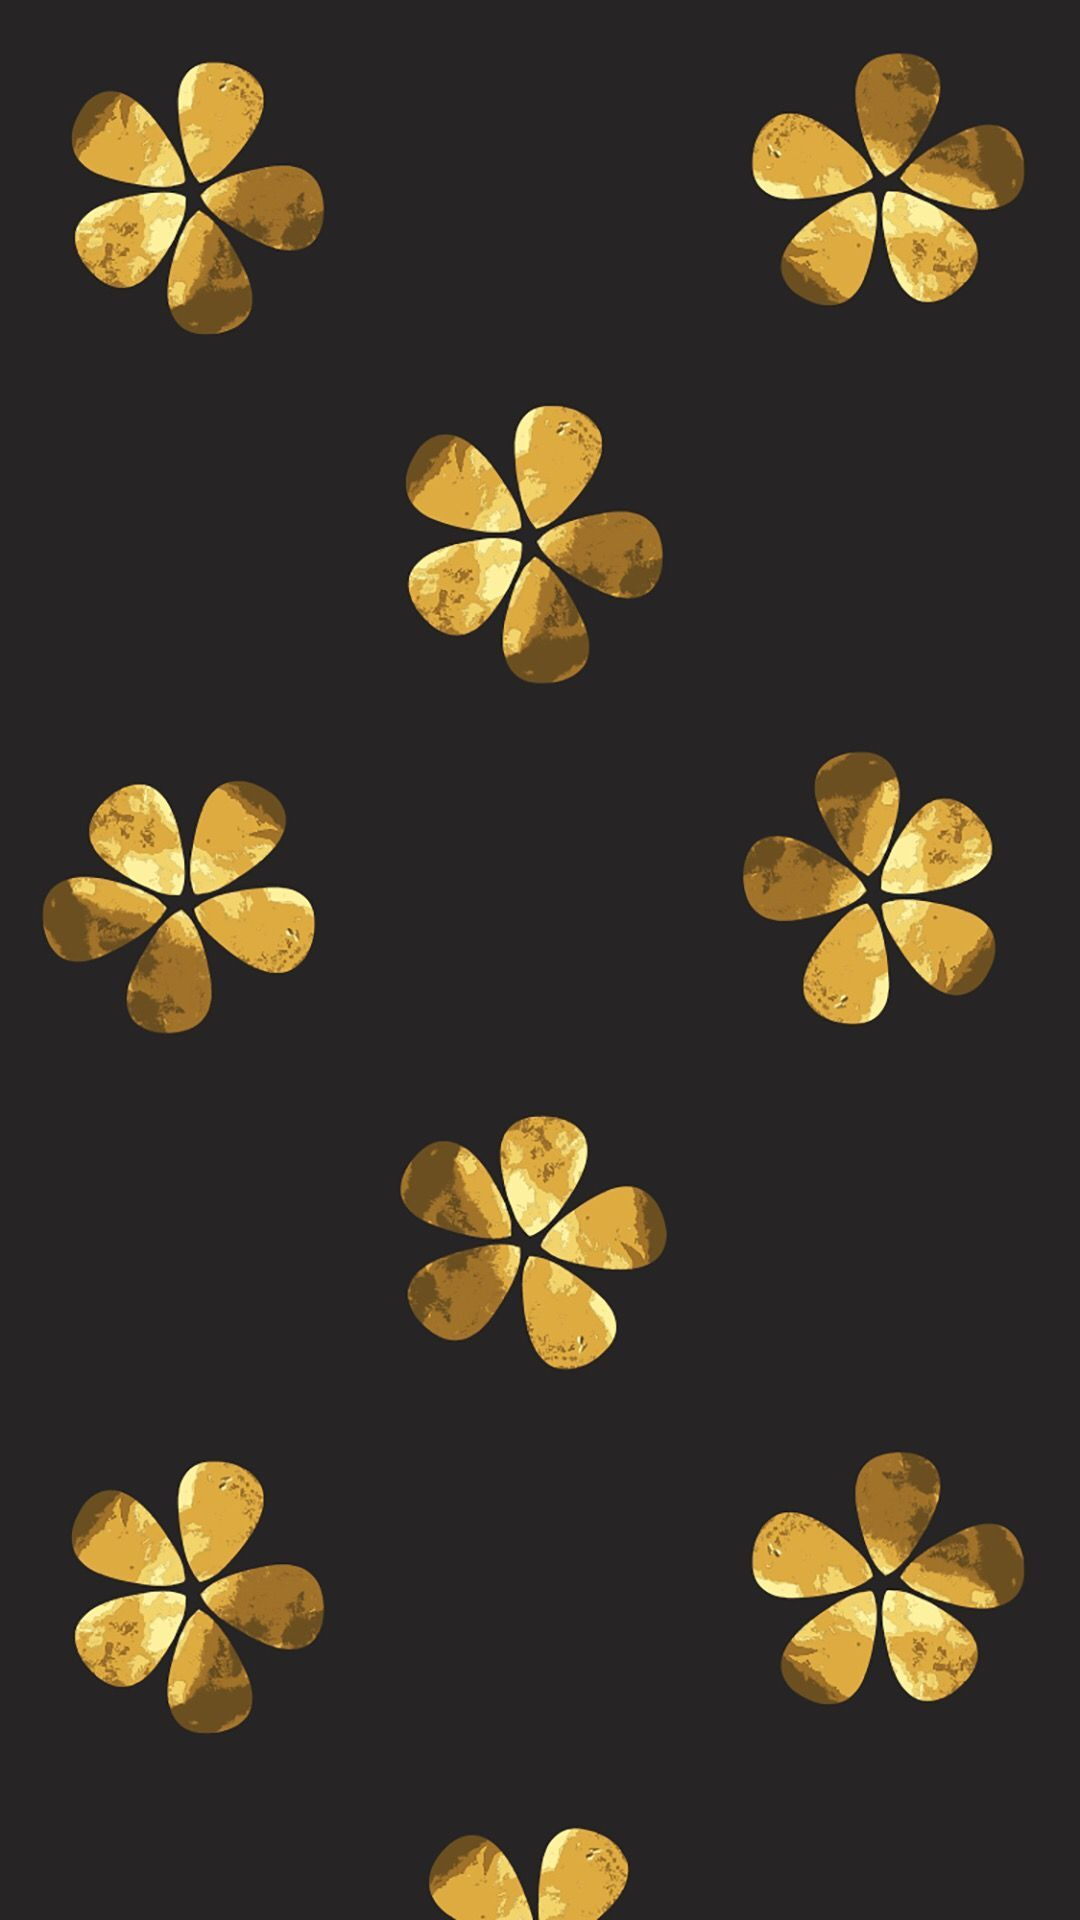 1080x1920 Black and gold flowers | Aesthetic wallpapers, Black, gold ...